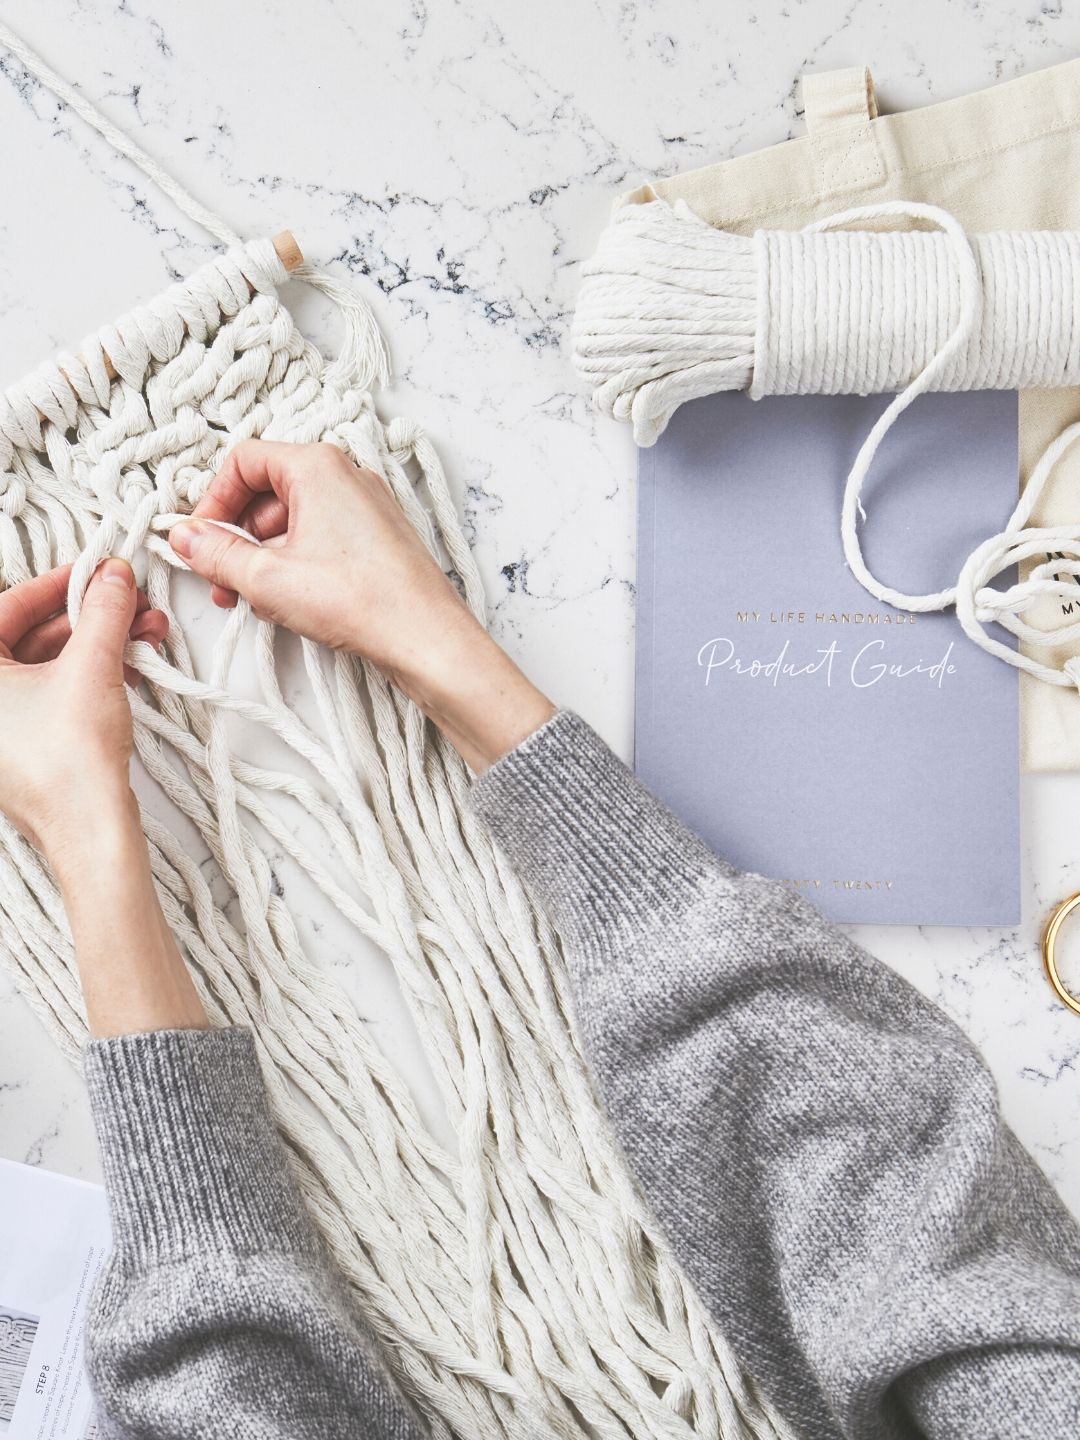 Large Macrame Wall Hanging Craft Kit